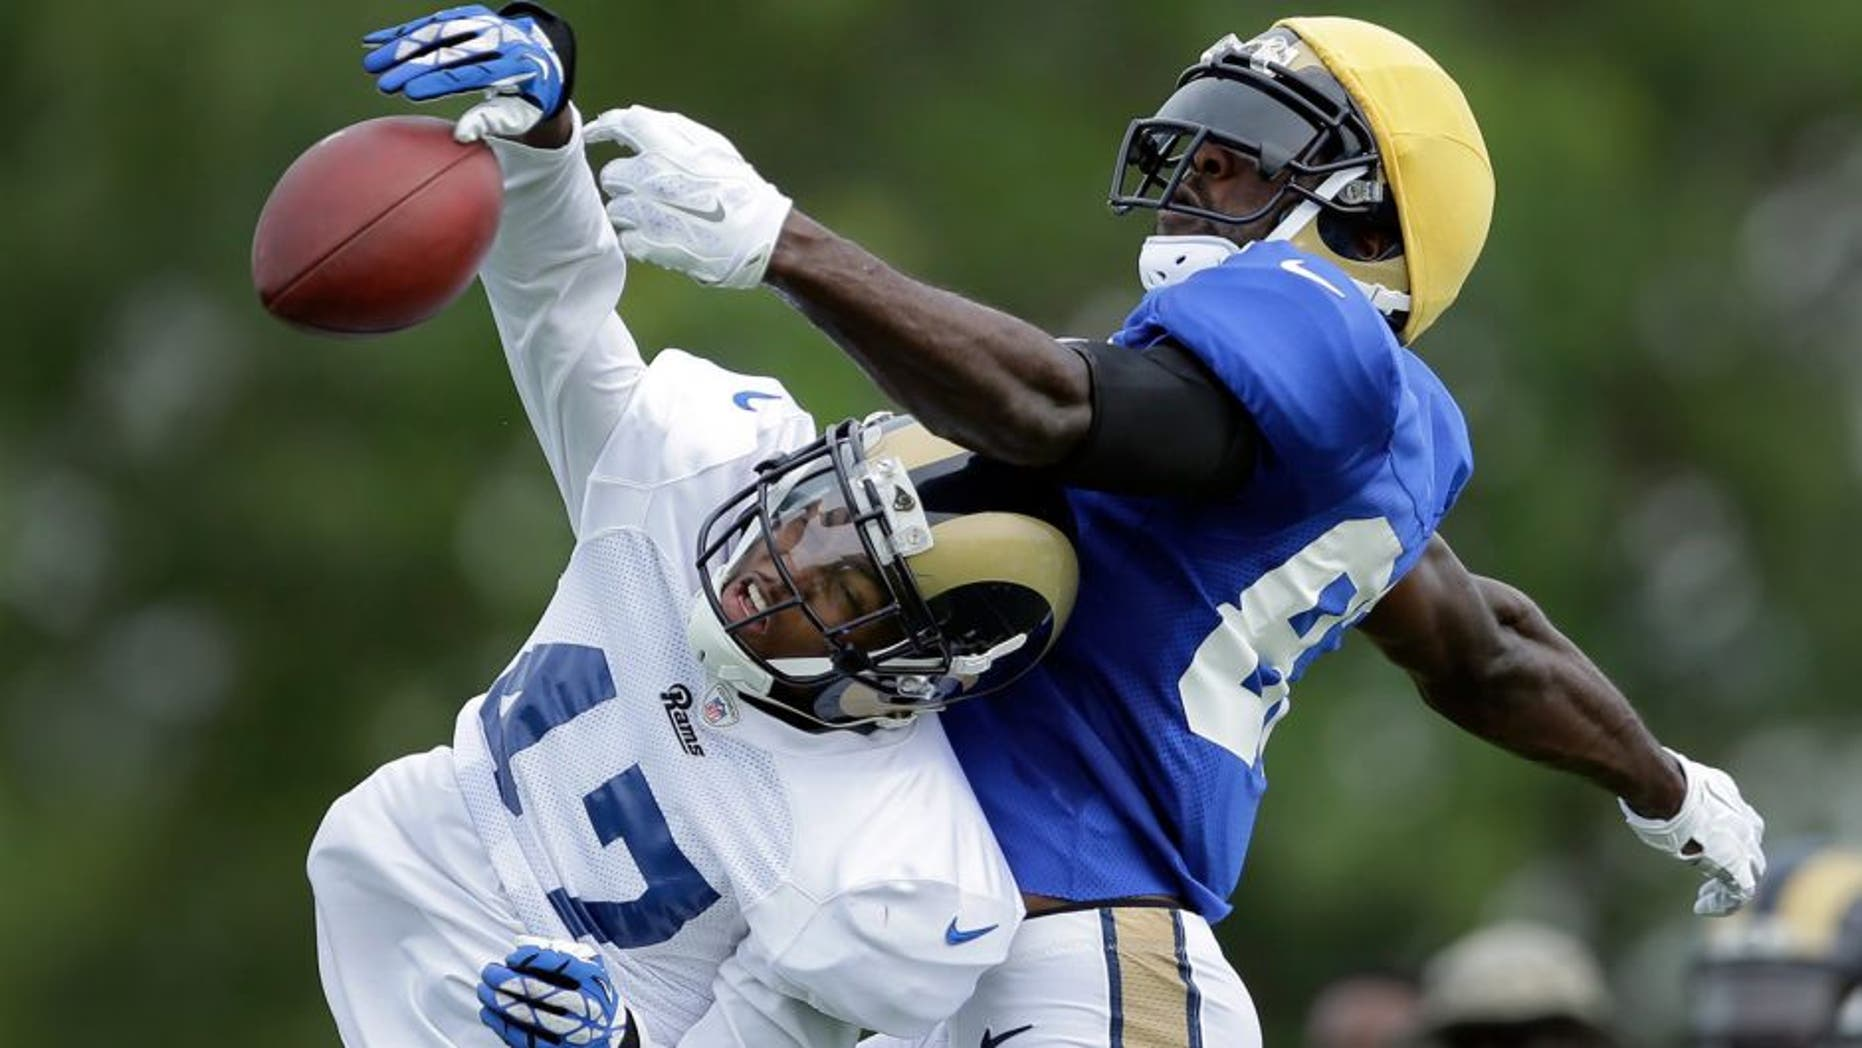 St. Louis Rams cornerback Marcus Roberson, left, knocks a pass away from wide receiver Brian Quick during training camp at the NFL football team's practice facility Tuesday, Aug. 4, 2015, in St. Louis. (AP Photo/Jeff Roberson)